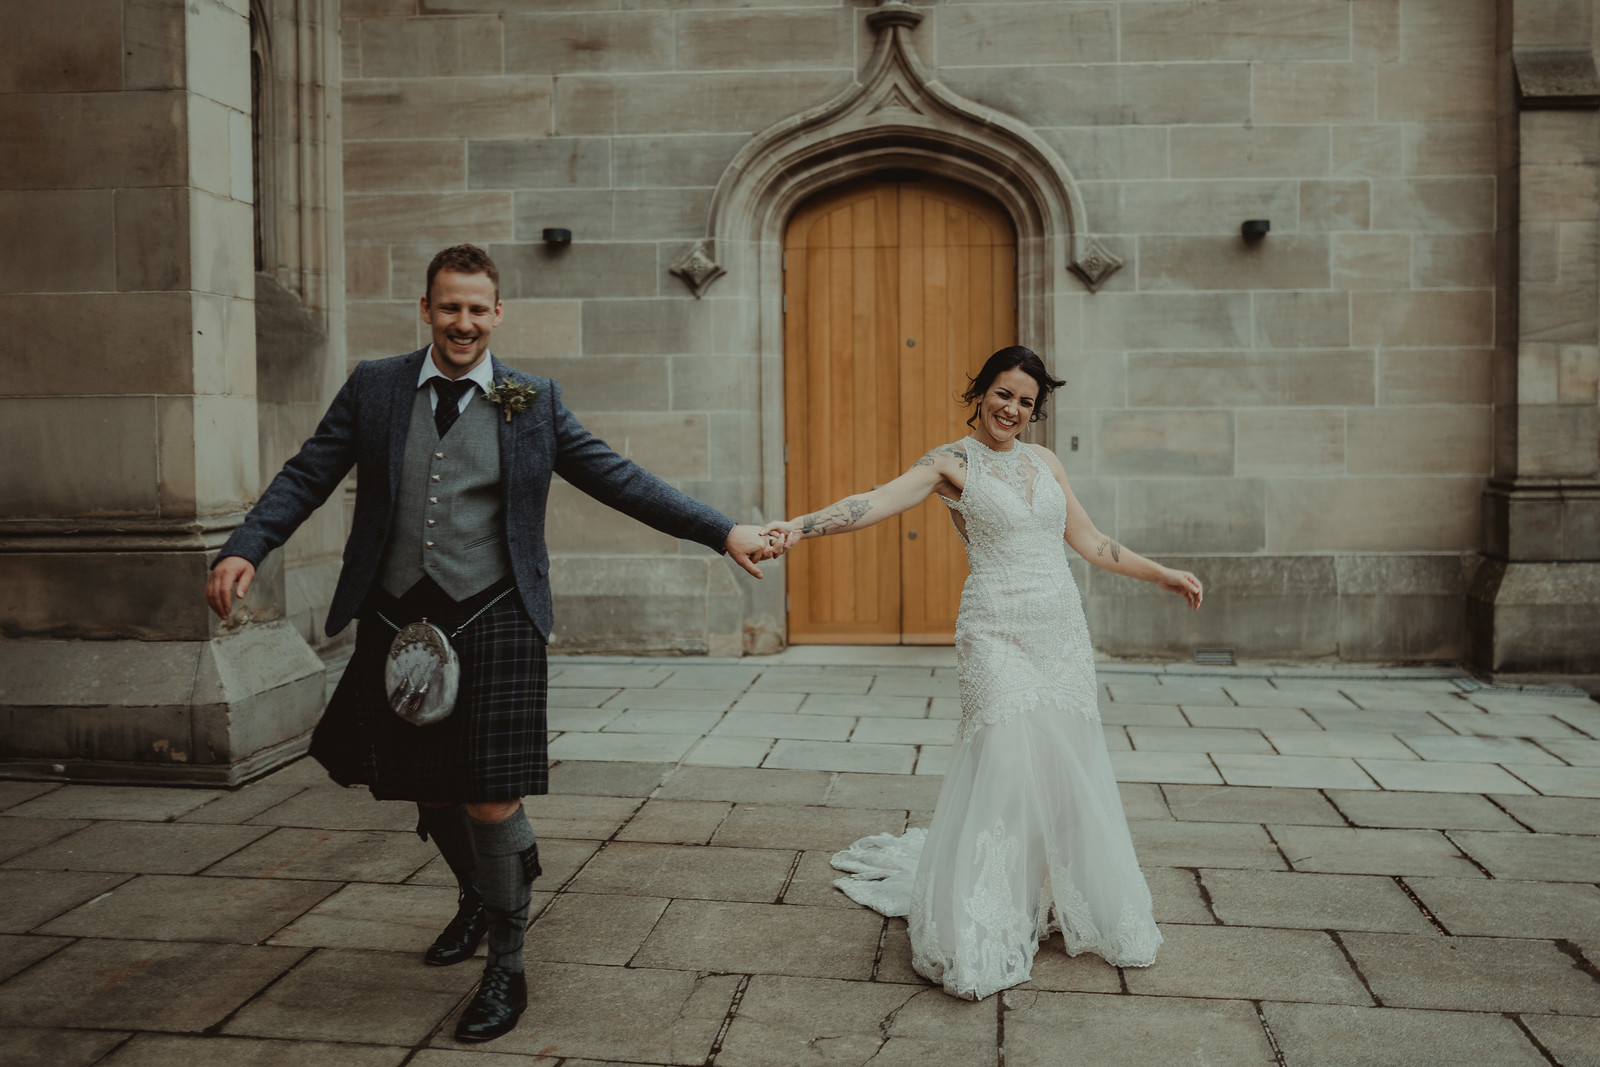 Full of smiles and laughter wedding photo of bride and groom